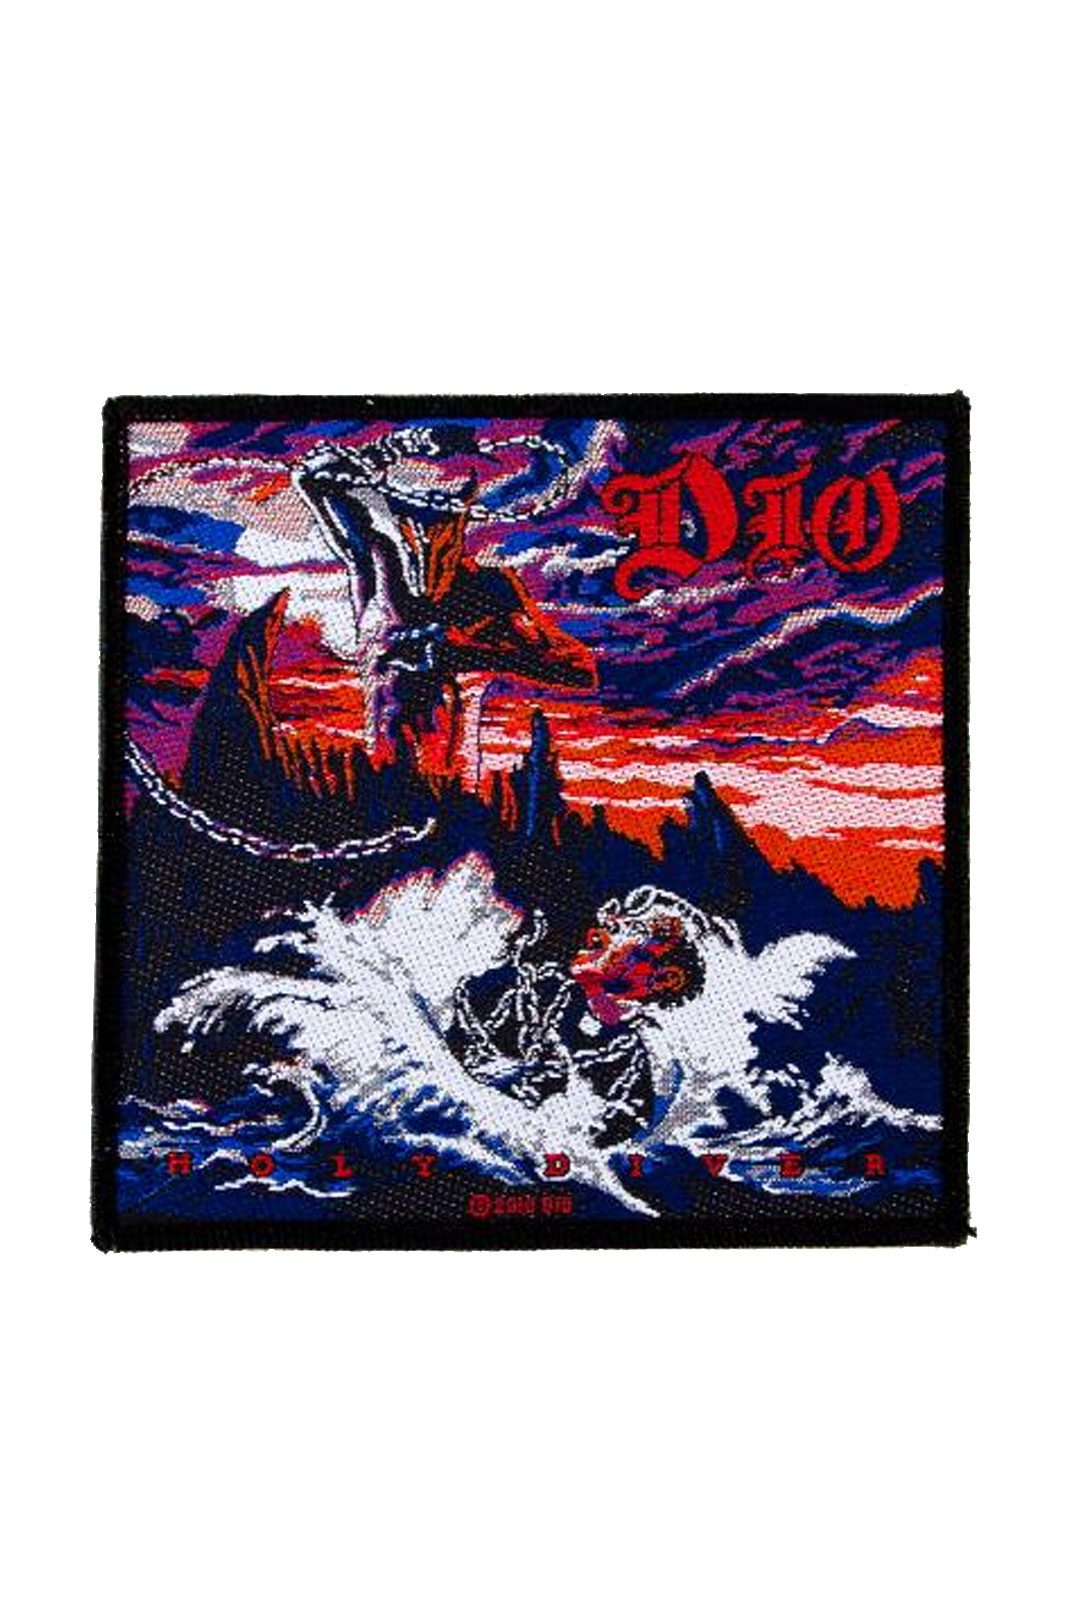 official merchandise dio holy diver